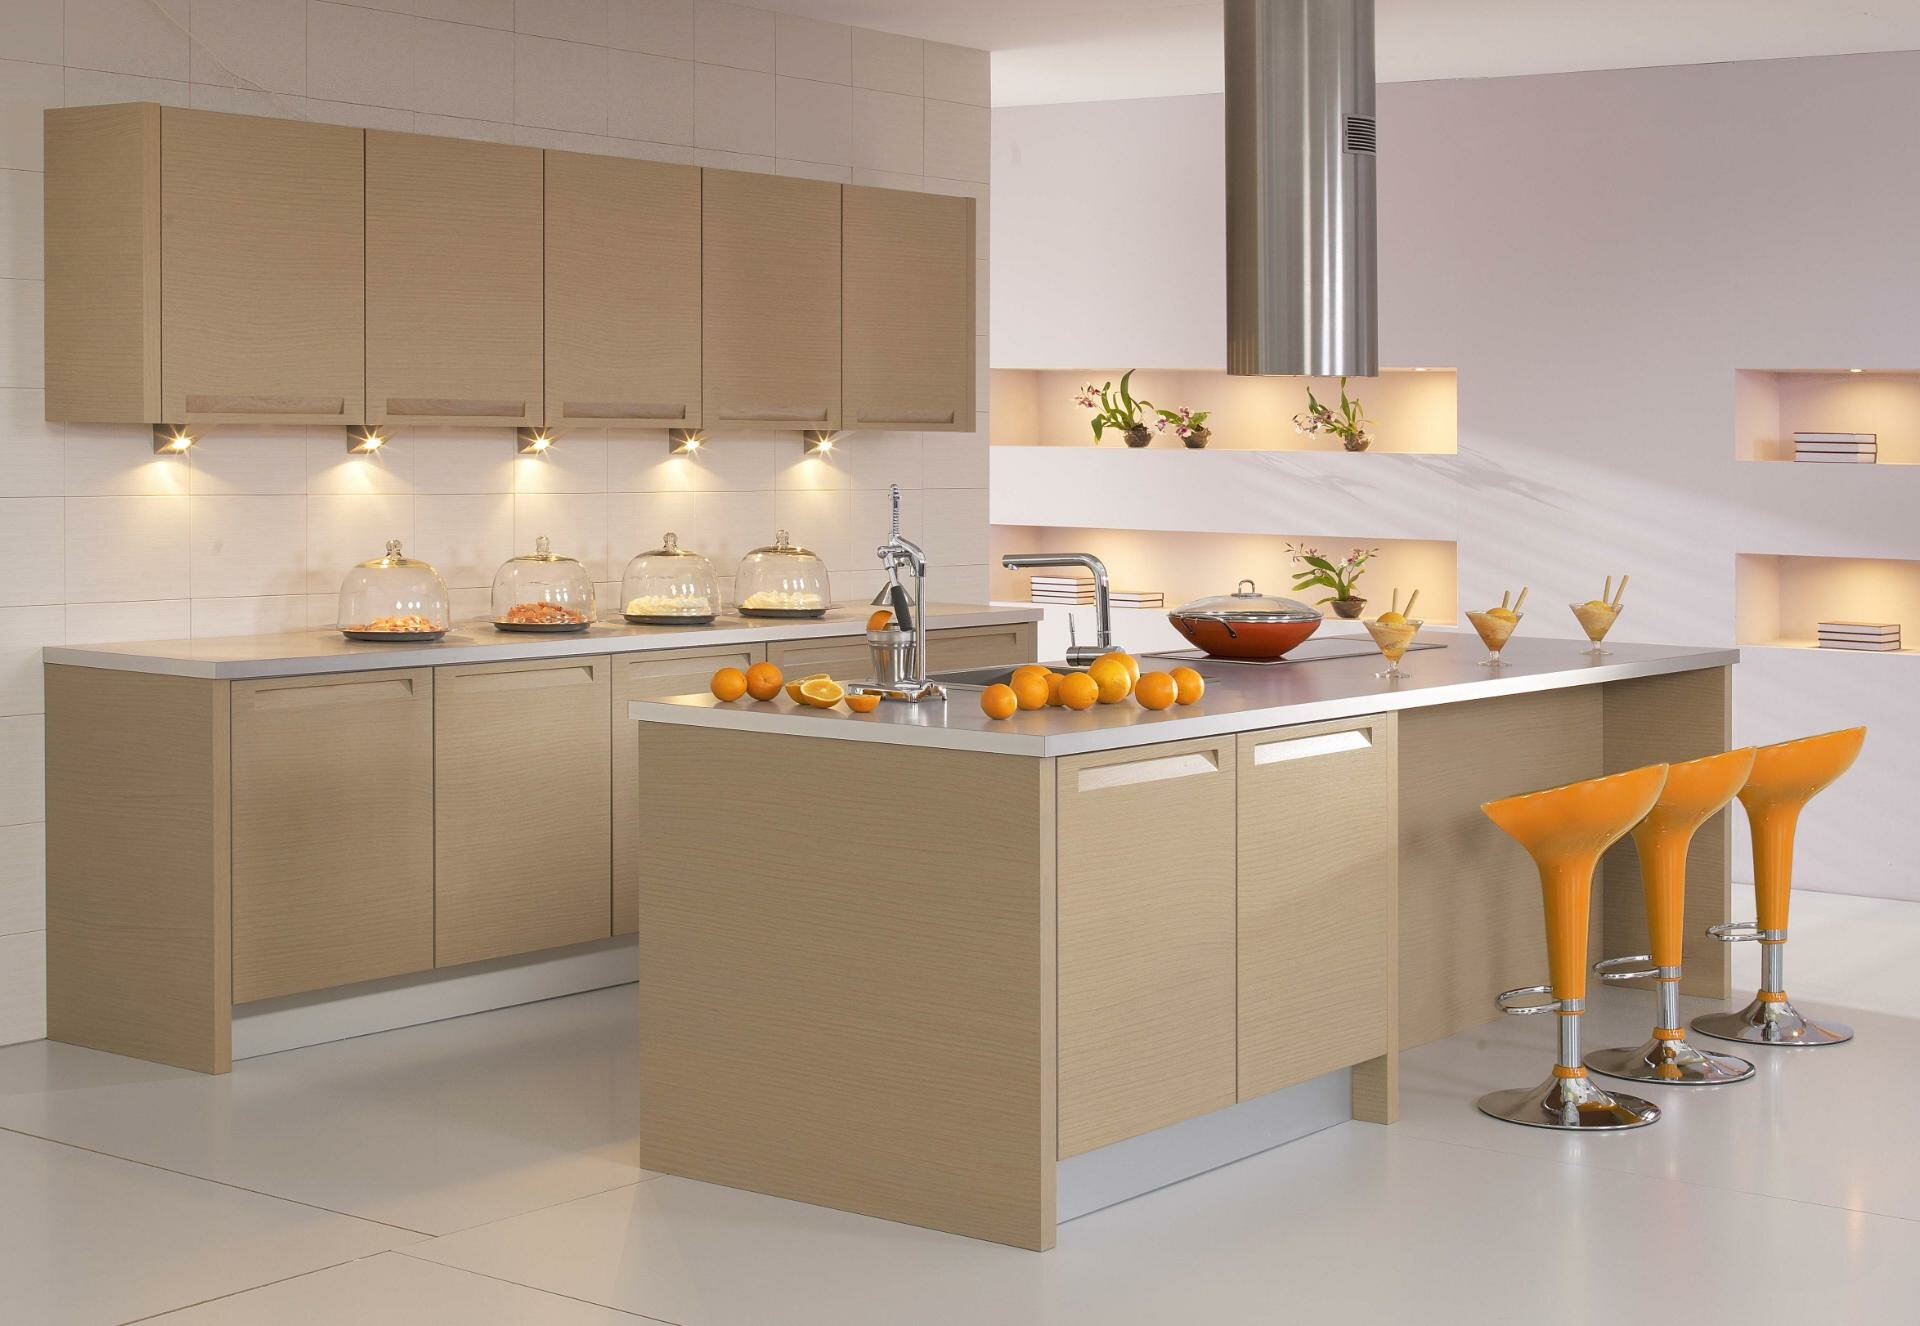 15 great kitchen cabinets that will inspire you